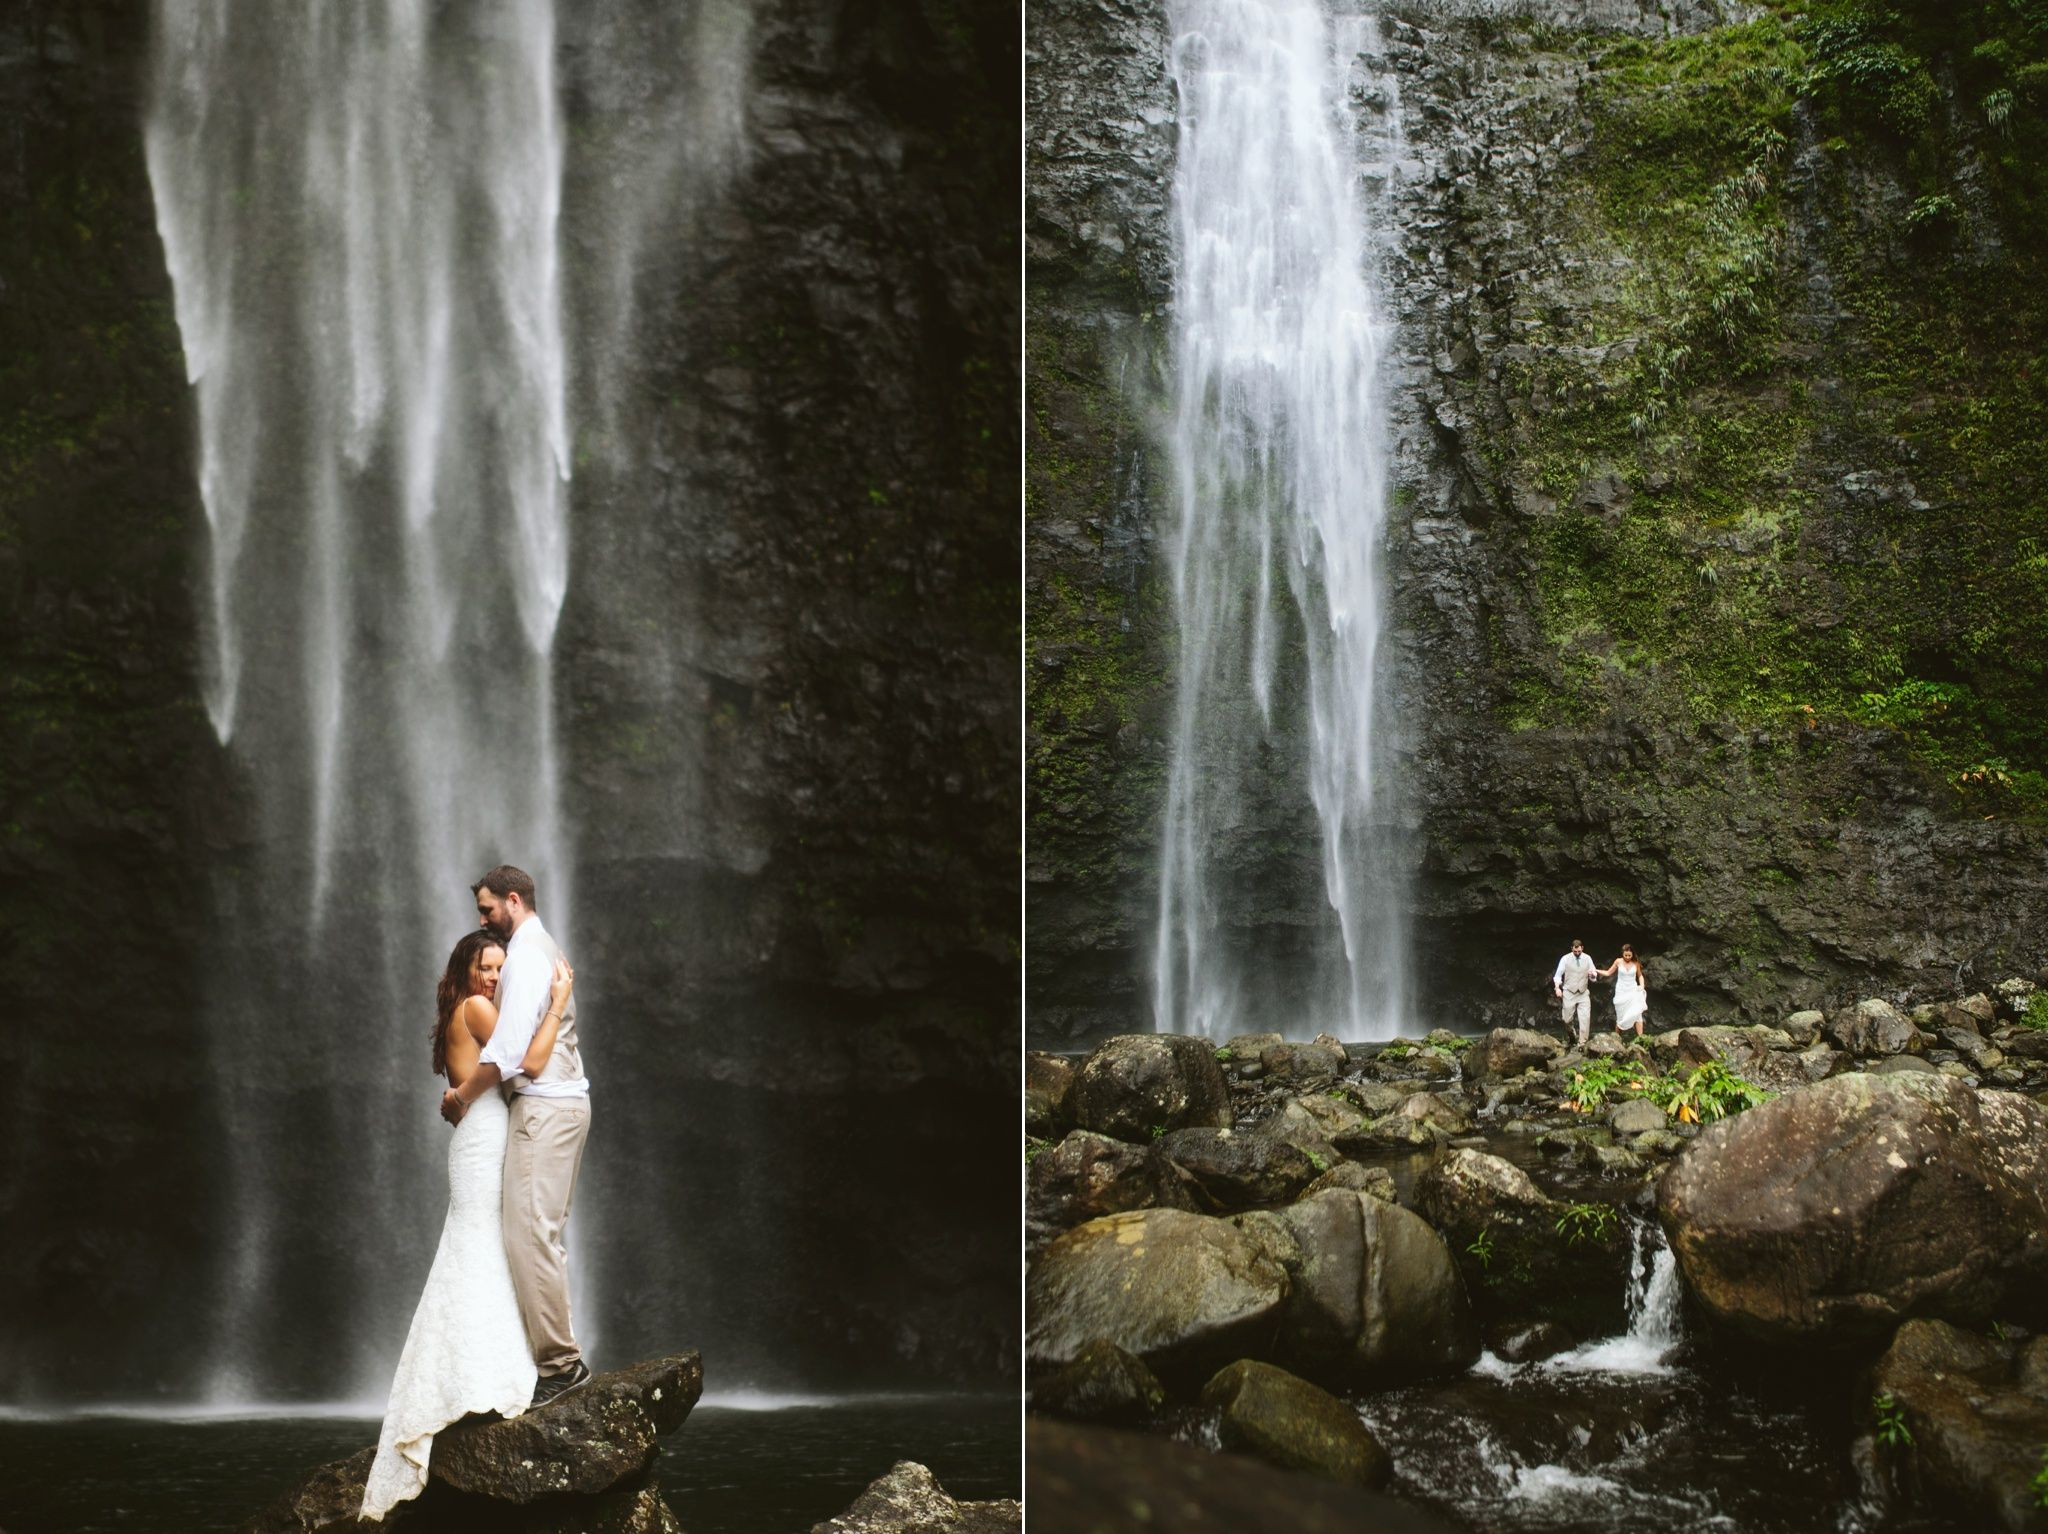 waterfall elopement like what we want